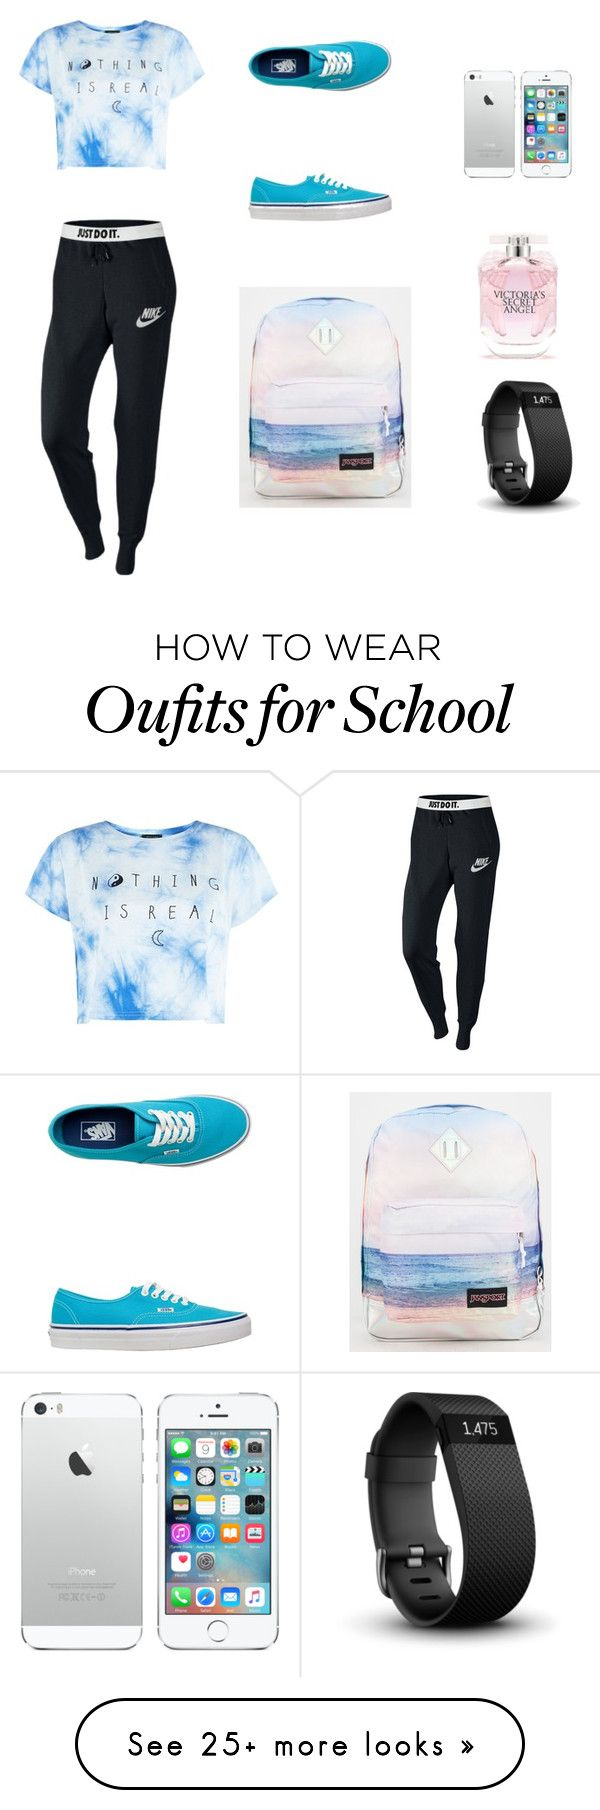 """Keen 4 school"" by fashionalien7 on Polyvore featuring NIKE, Vans, JanSport, Victoria's Secret and Fitbit"